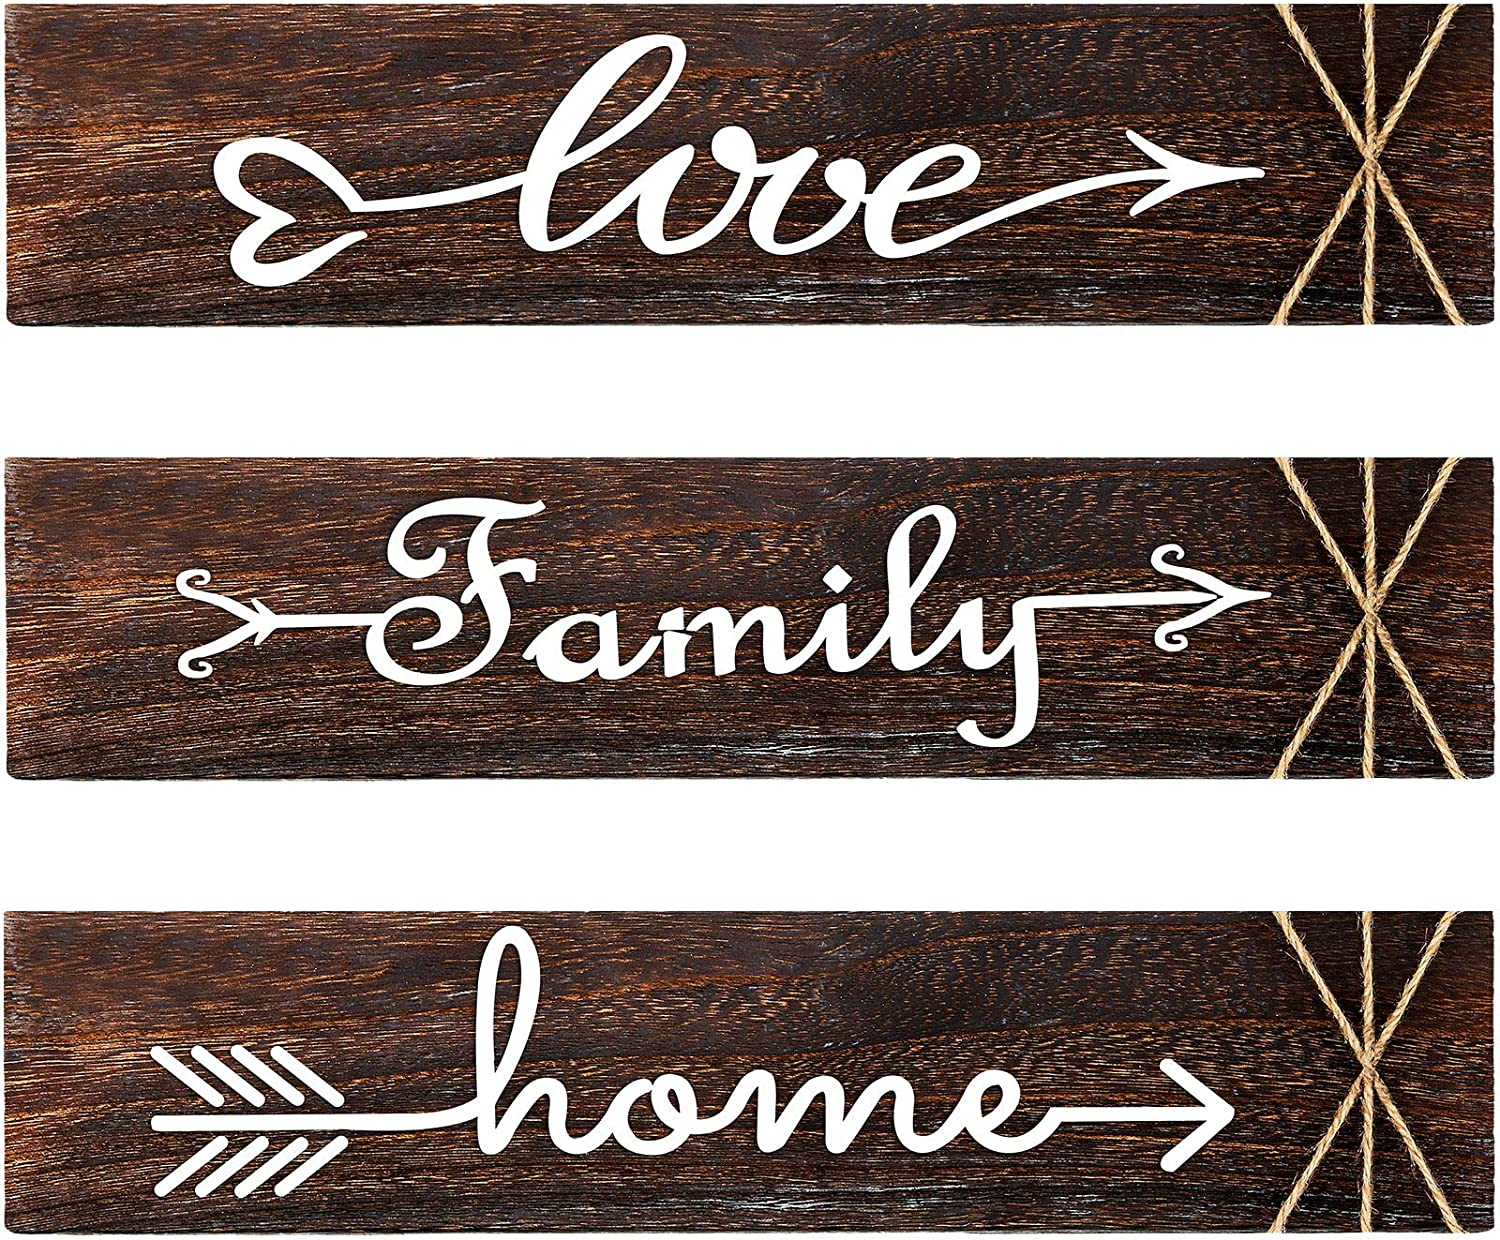 3 Pieces Rustic Wood Arrow Sign Wall Decor Home Family Love Sign, 13 x 3 Inch Wood Hanging Sign Decorative Wall Decor for Home Office Wedding Kitchen and Living Room